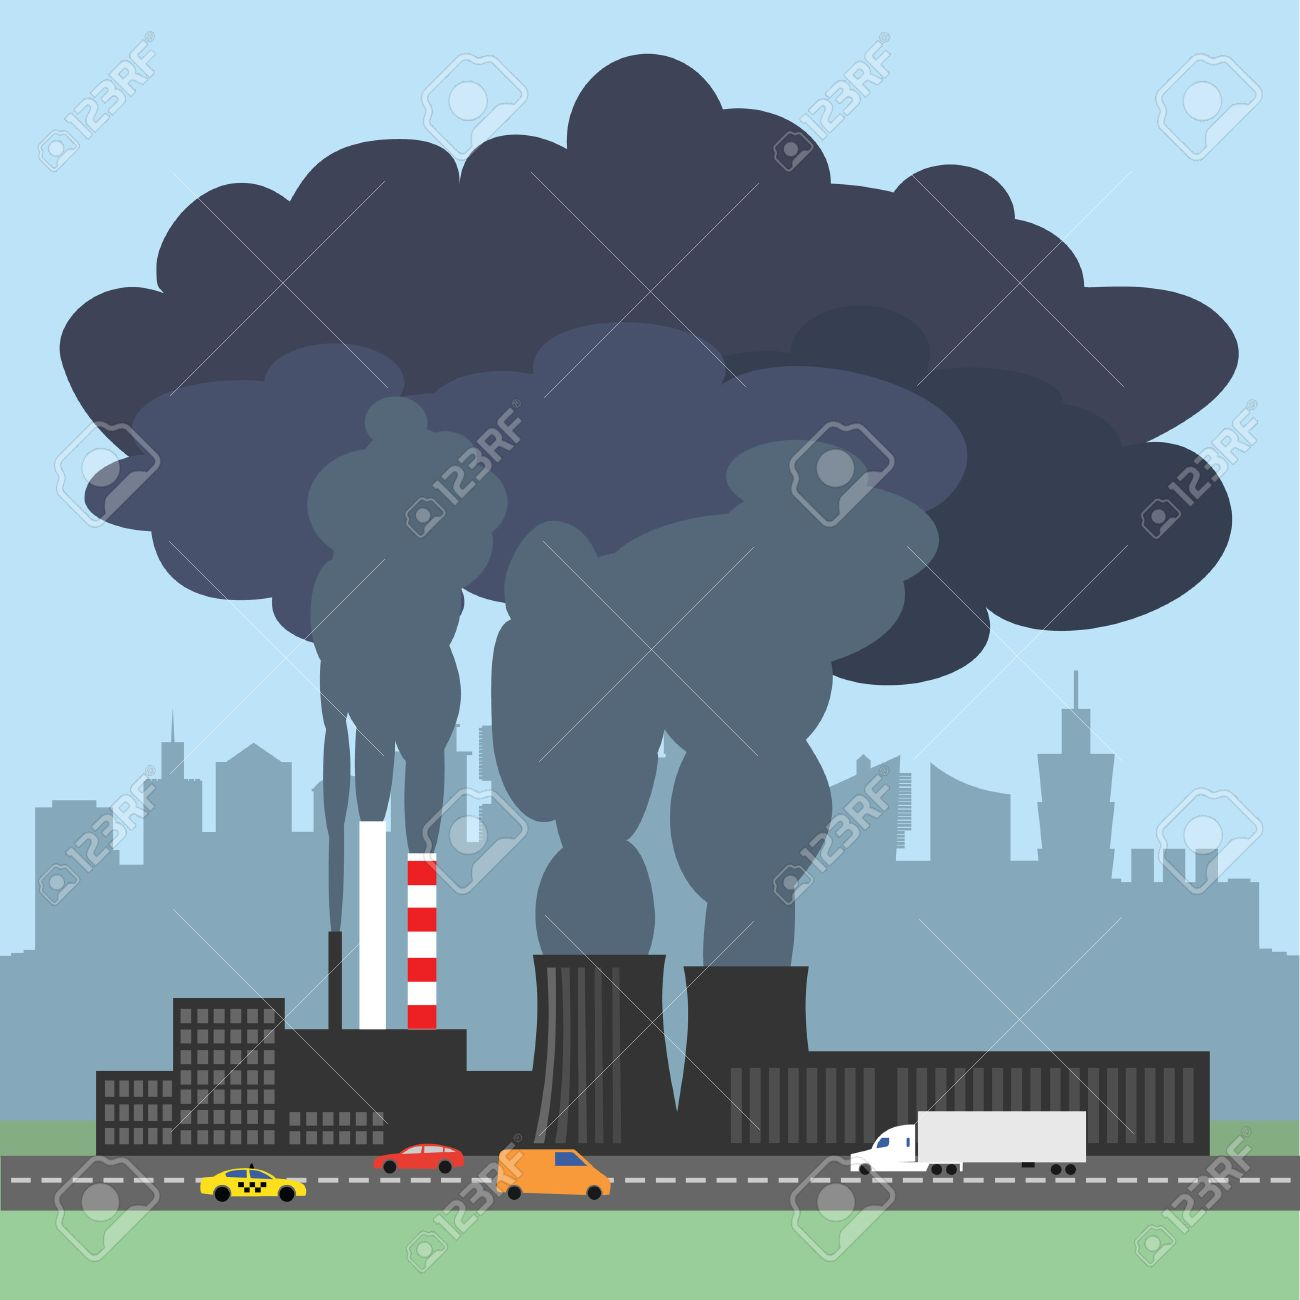 A conceptual vector illustration showing the polluted smoke from a factory chimney over a city. Causes of air pollution, acid rains and green house effect. Ecological disaster. Industrial problems. - 50591005